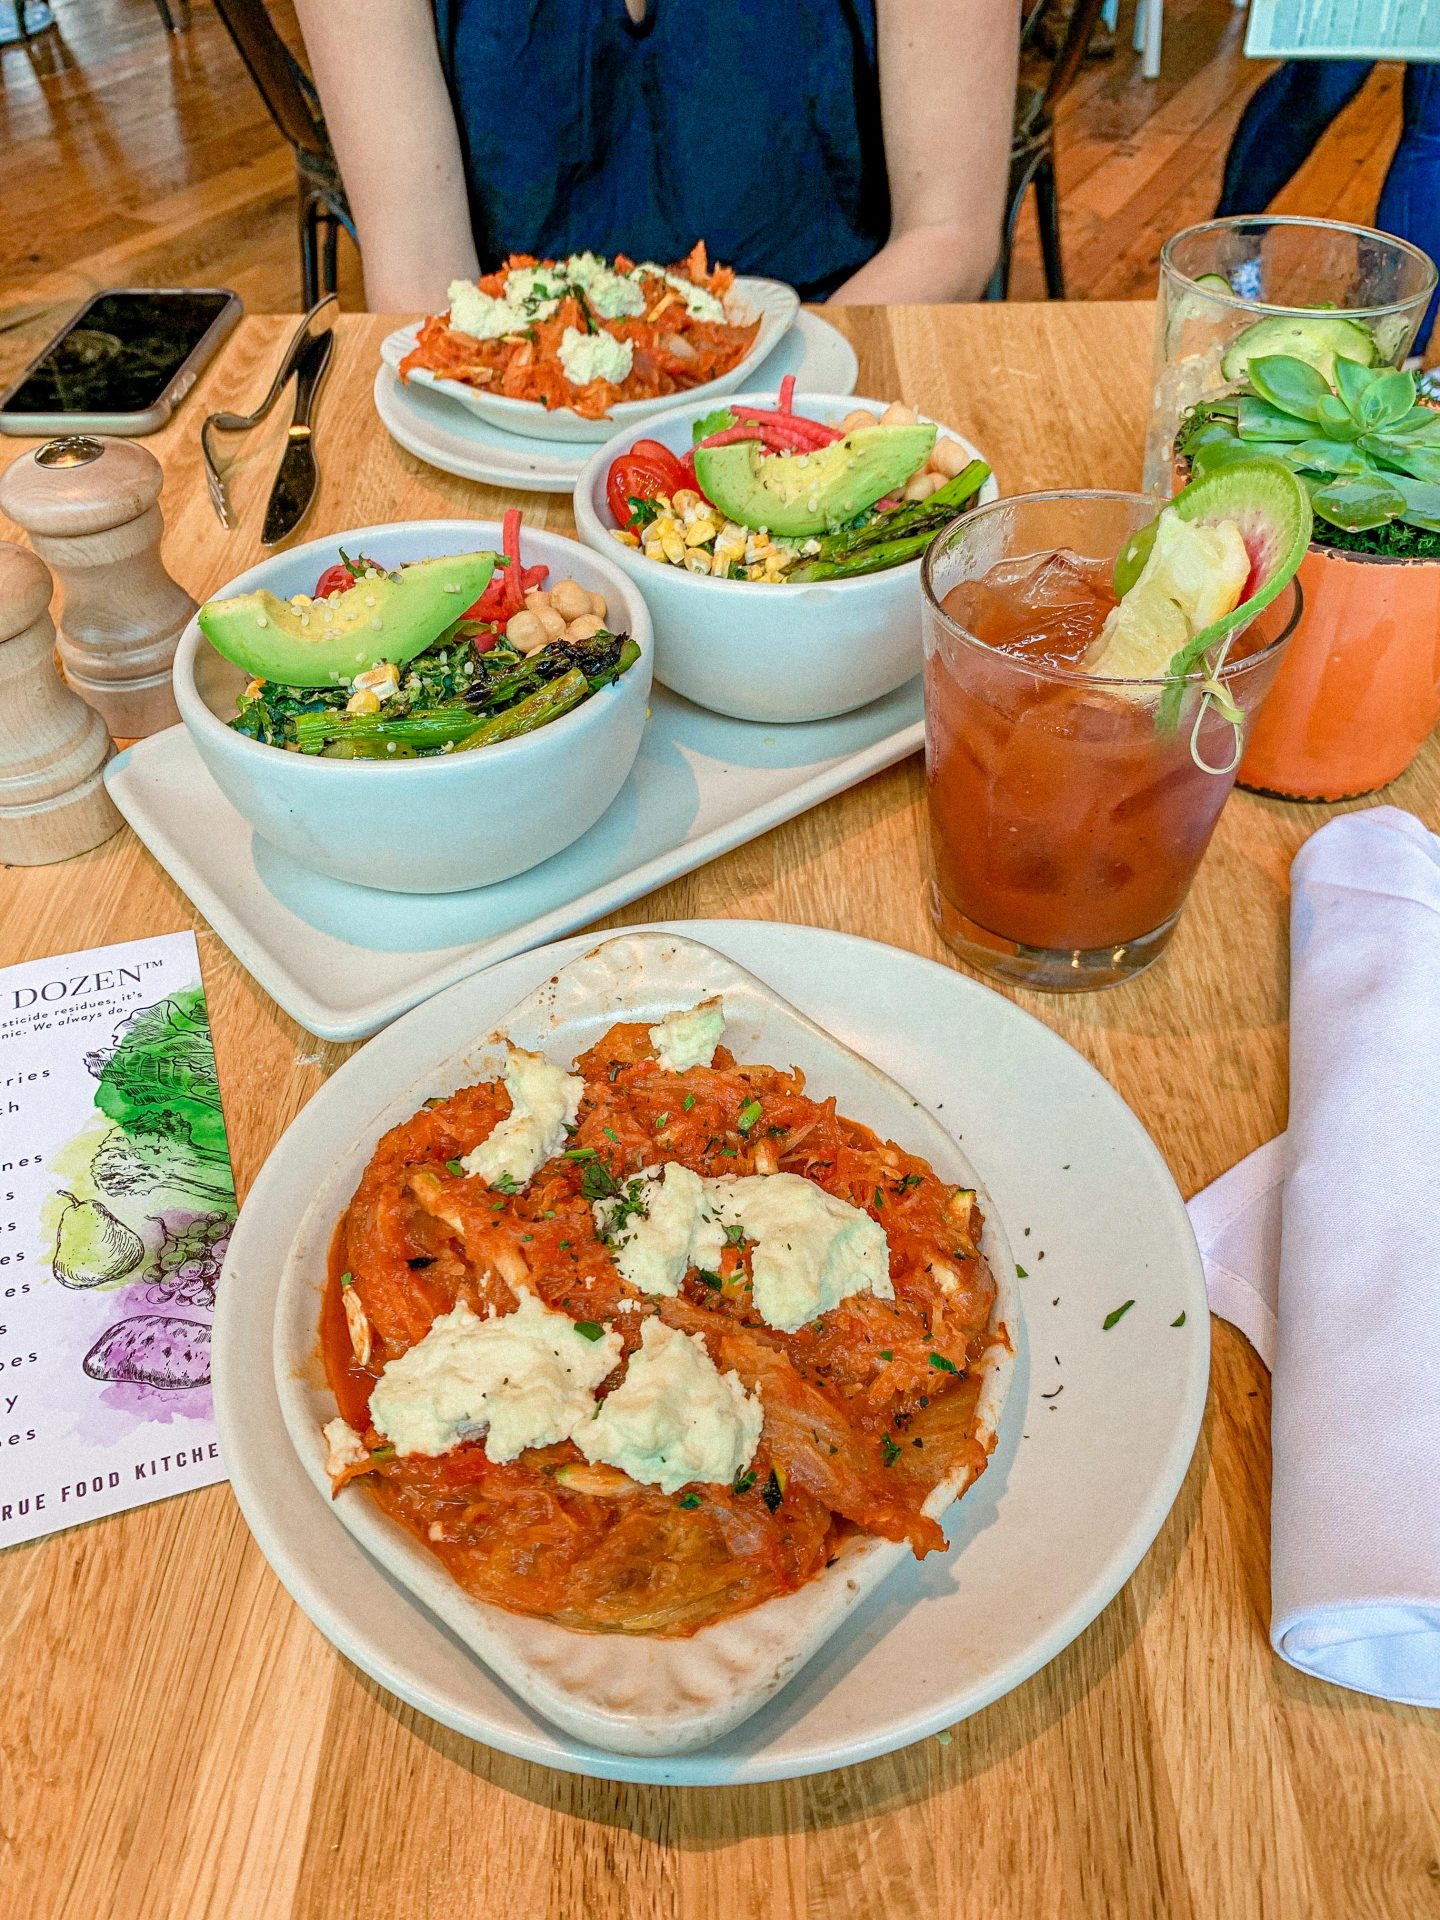 los angelos, healthy eats in l.a., where to eat travel guide, los Angelous, la travel, vegan, gluten free, california, hike, dairy free